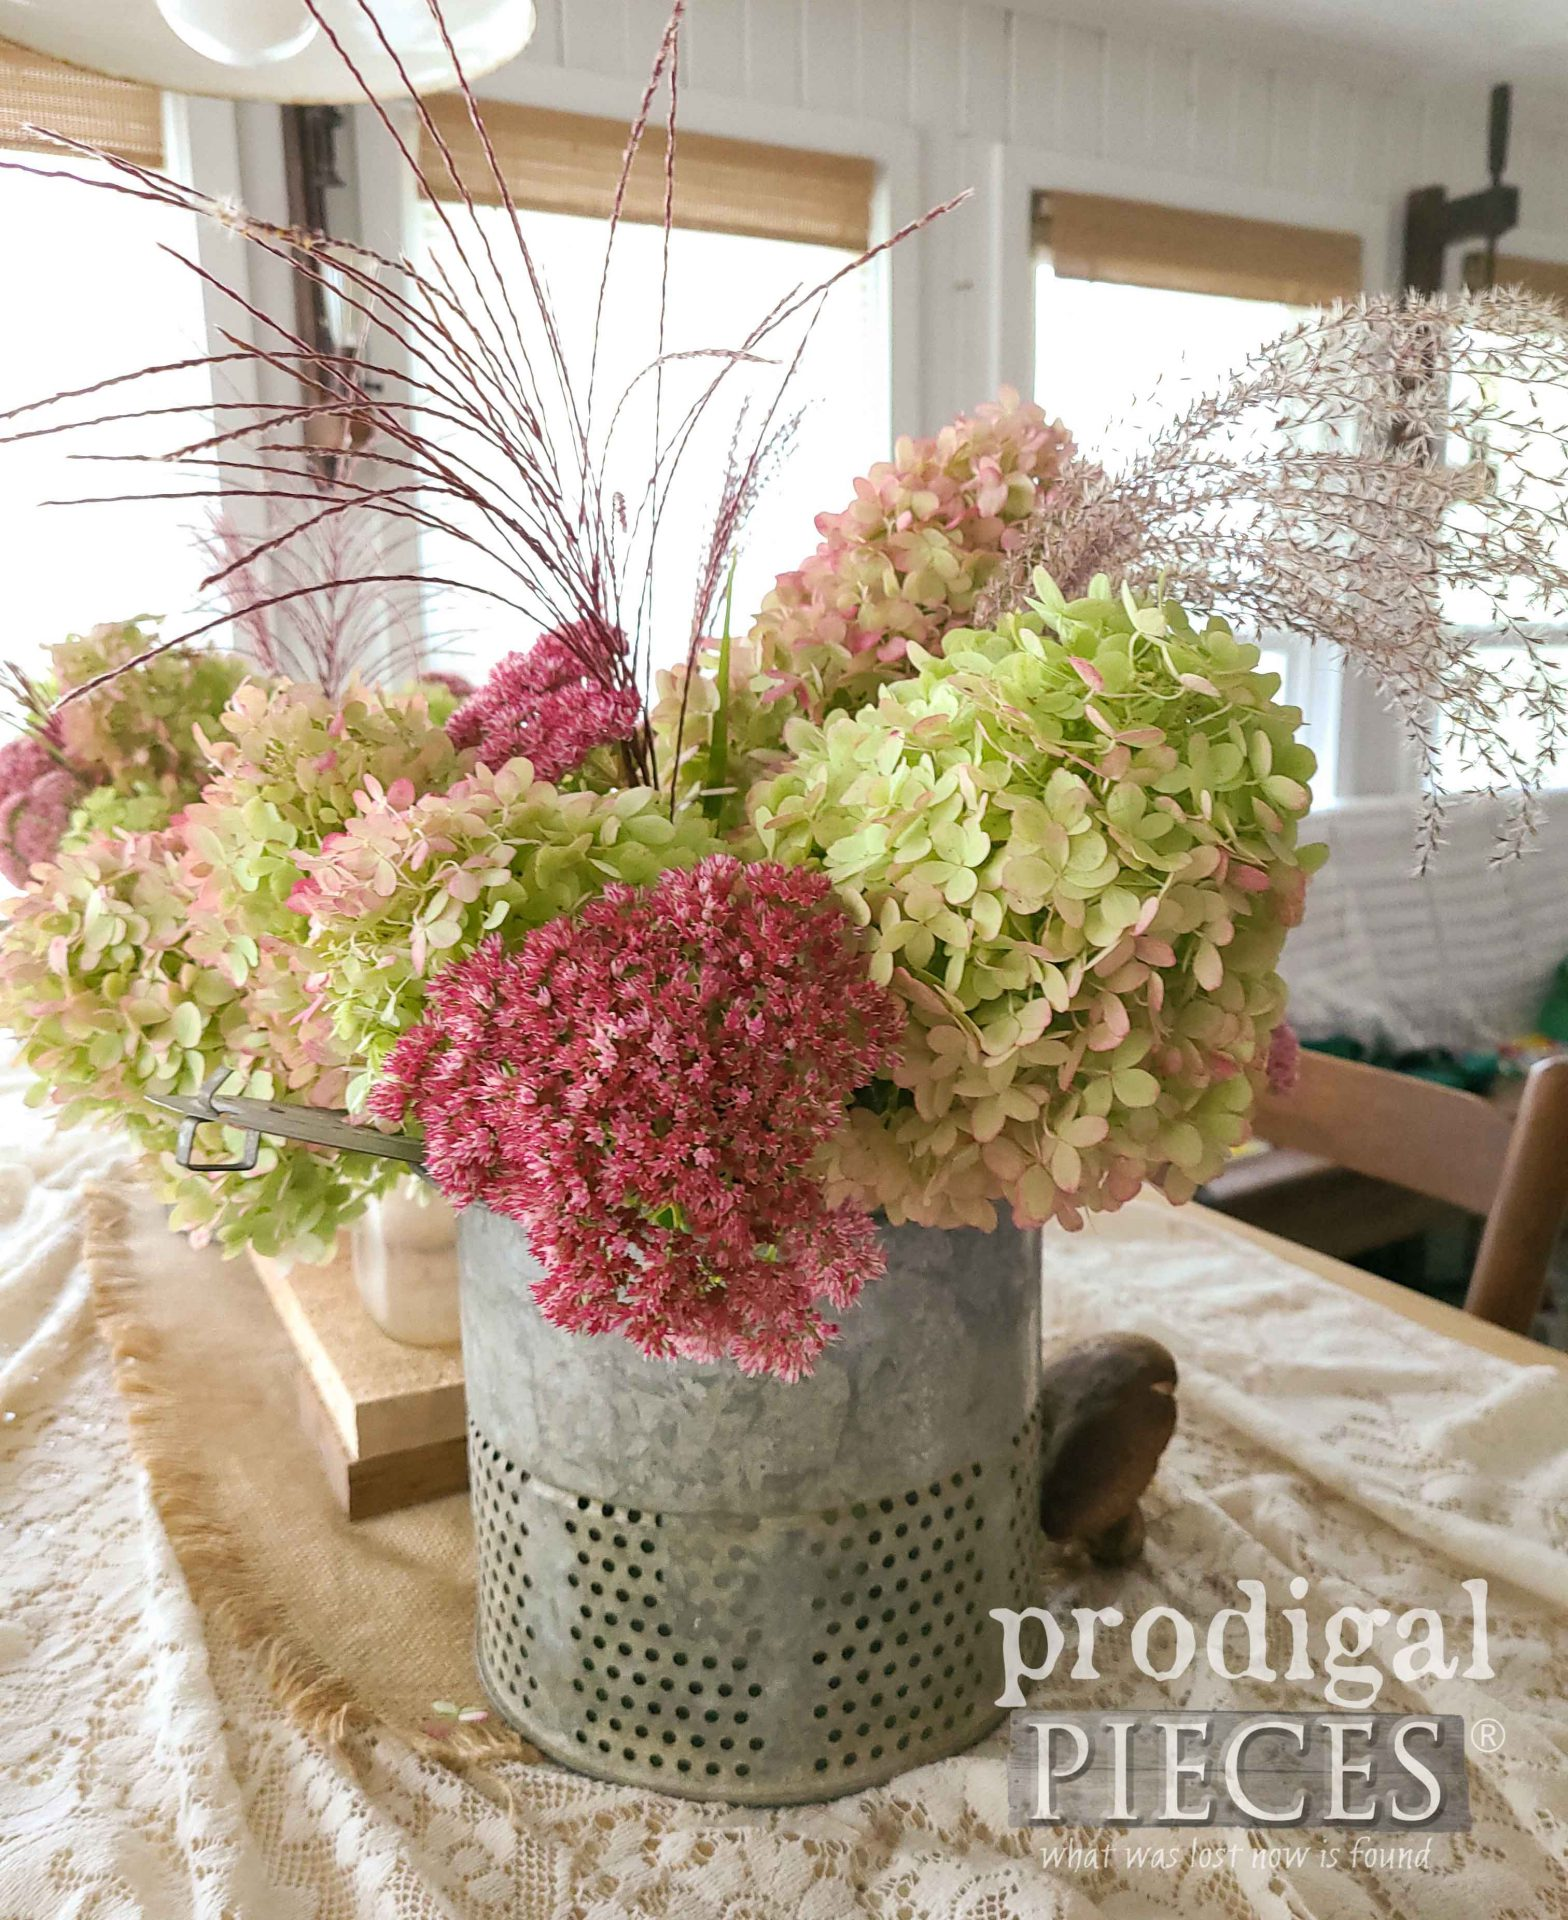 Autumn Flower Display by Prodigal Pieces | prodigalpieces.com #prodigalpieces #farmhouse #flowers #home #homedecor #diy